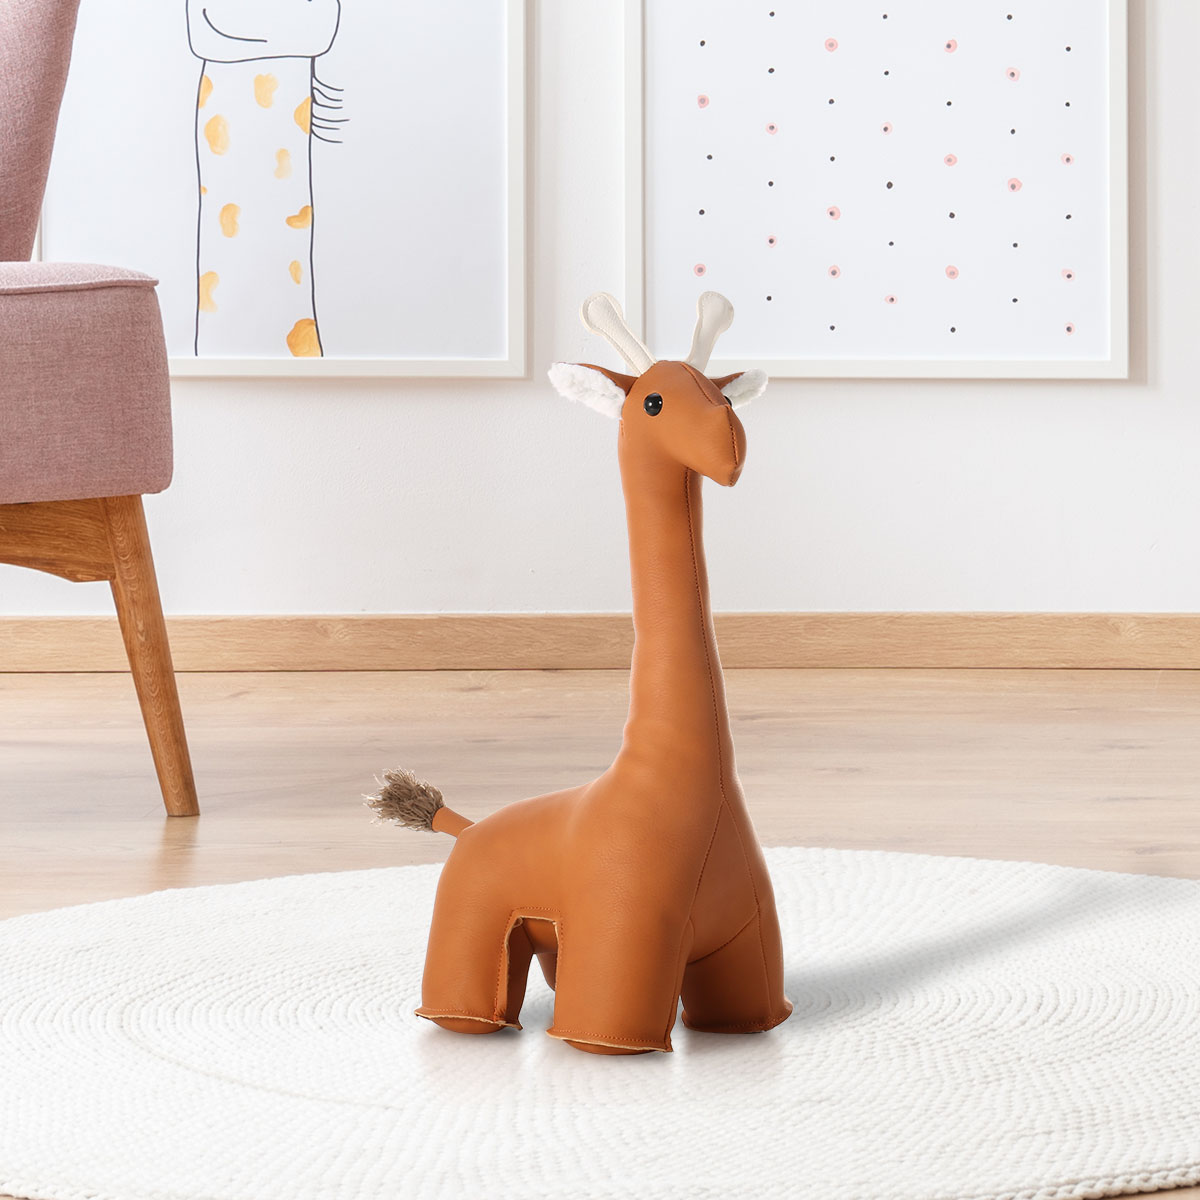 Tooarts Leather Giraffe Bookend Animal Gift Home Decoration Cute Animal Toy Bedroom Bathroom Door Stopper Animal Figurine-in Figurines & Miniatures from Home & Garden    1